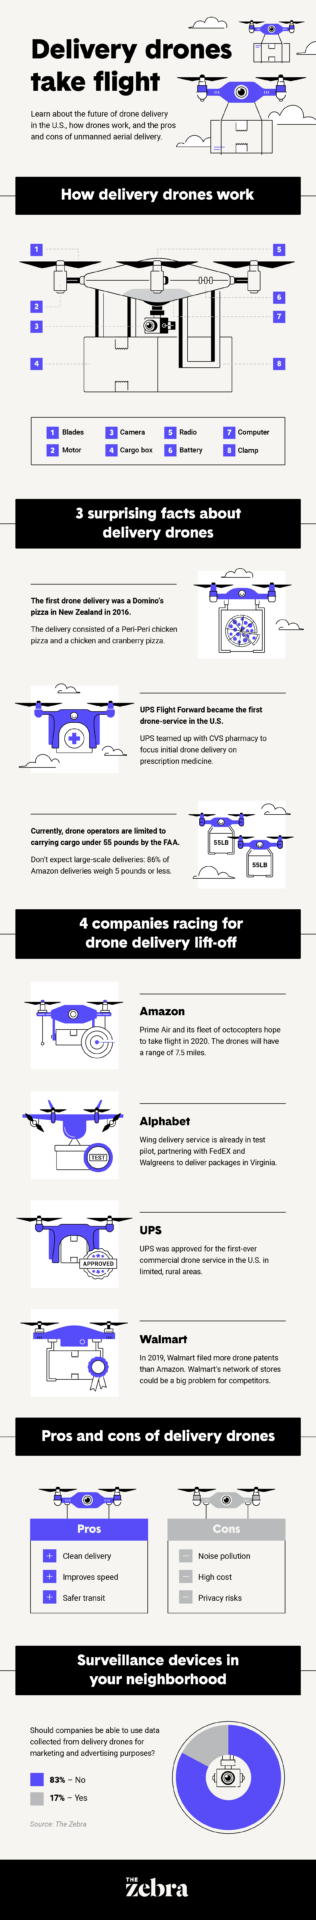 How Delivery Drones Work